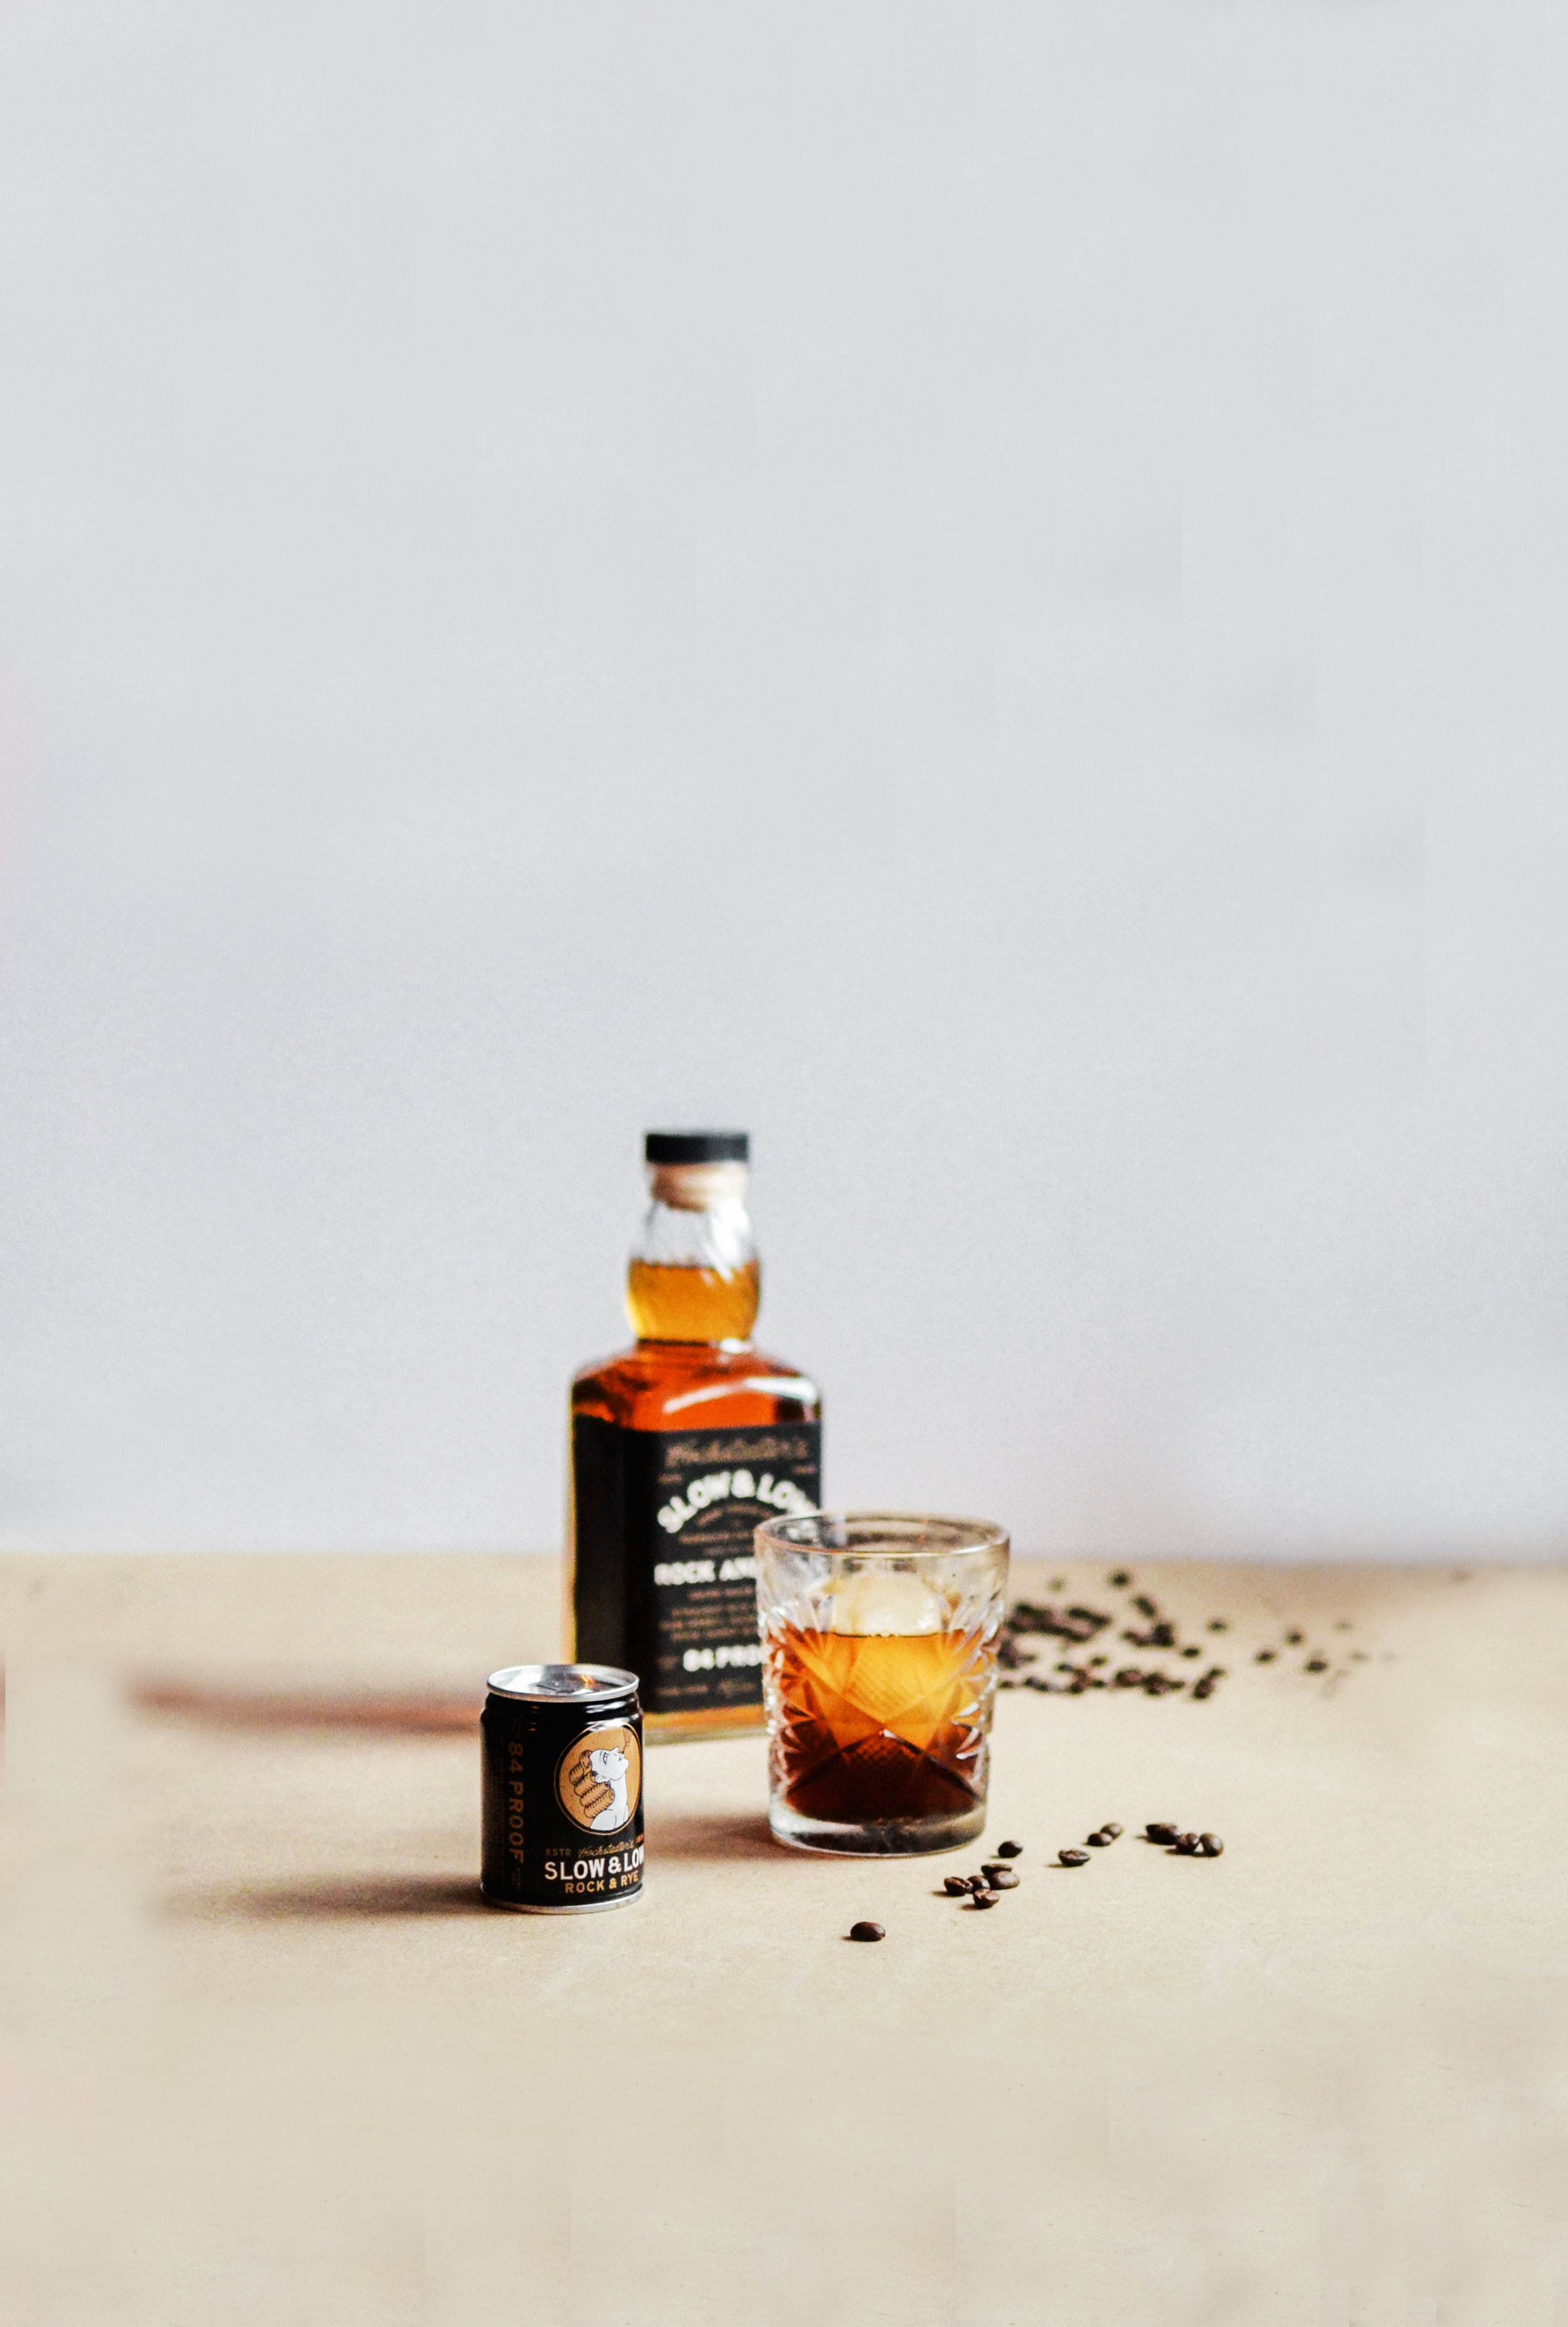 Wendling_Boyd_Coffee_Old_Fashioned_Low_And_Slow_Whiskey-9.jpg